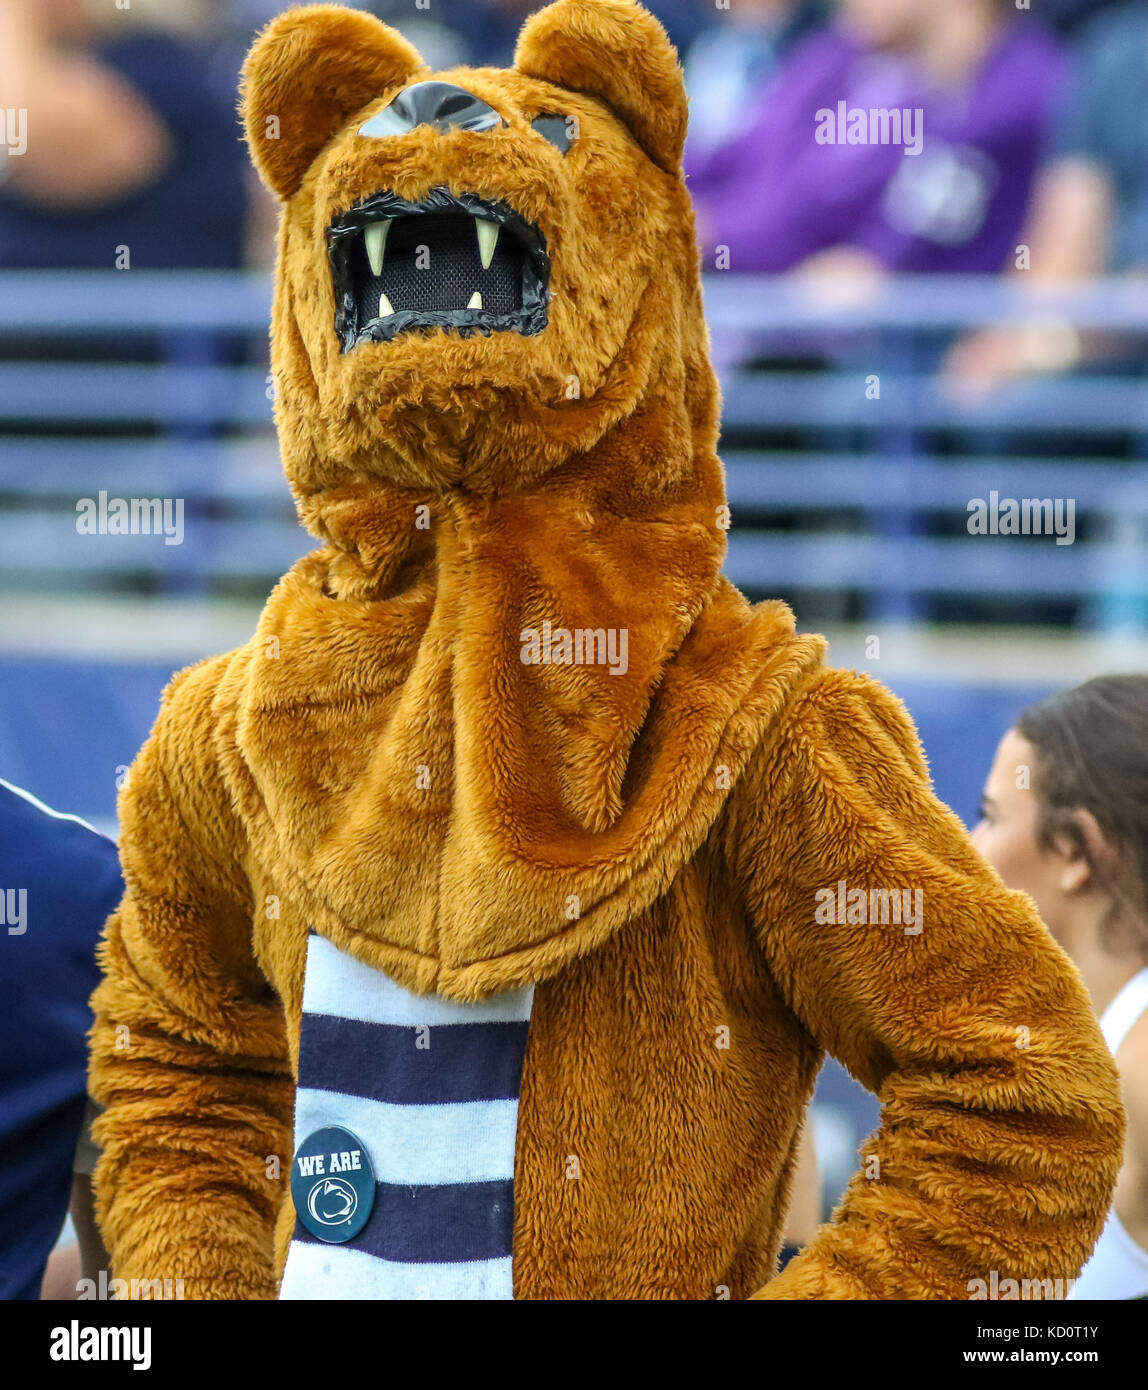 Saturday October 7th - The Penn State mascot on the sidelines during NCAA football game action between the Penn Stock Photo